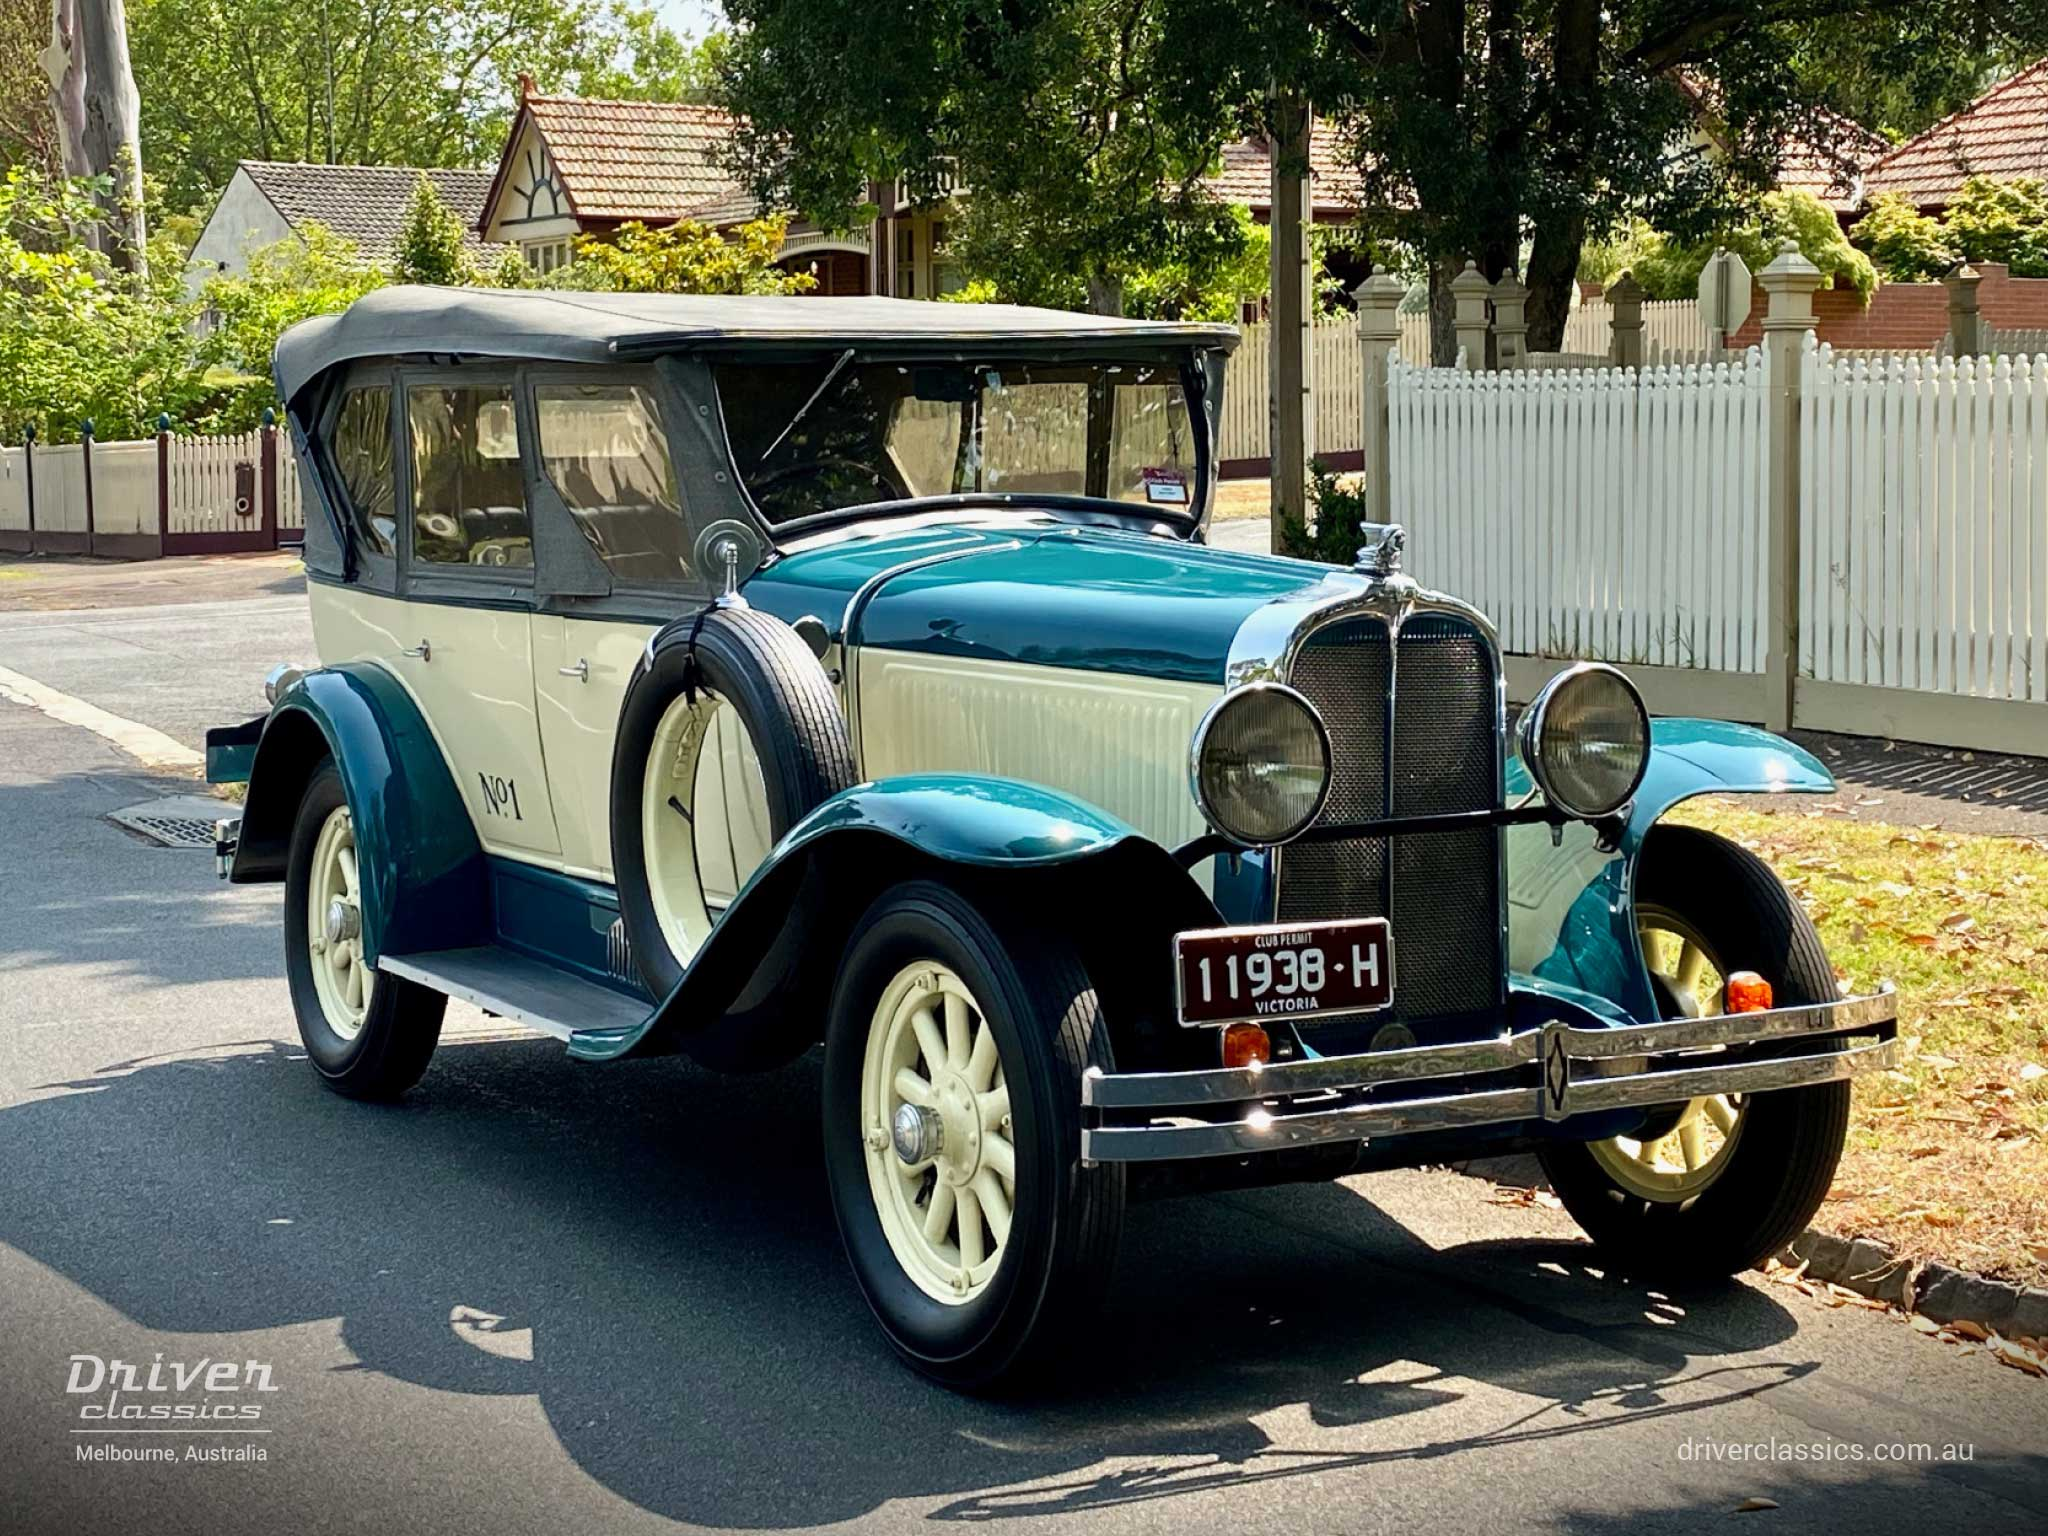 1929 Pontiac 29-6 car, side and front, Camberwell VIC, December 2019